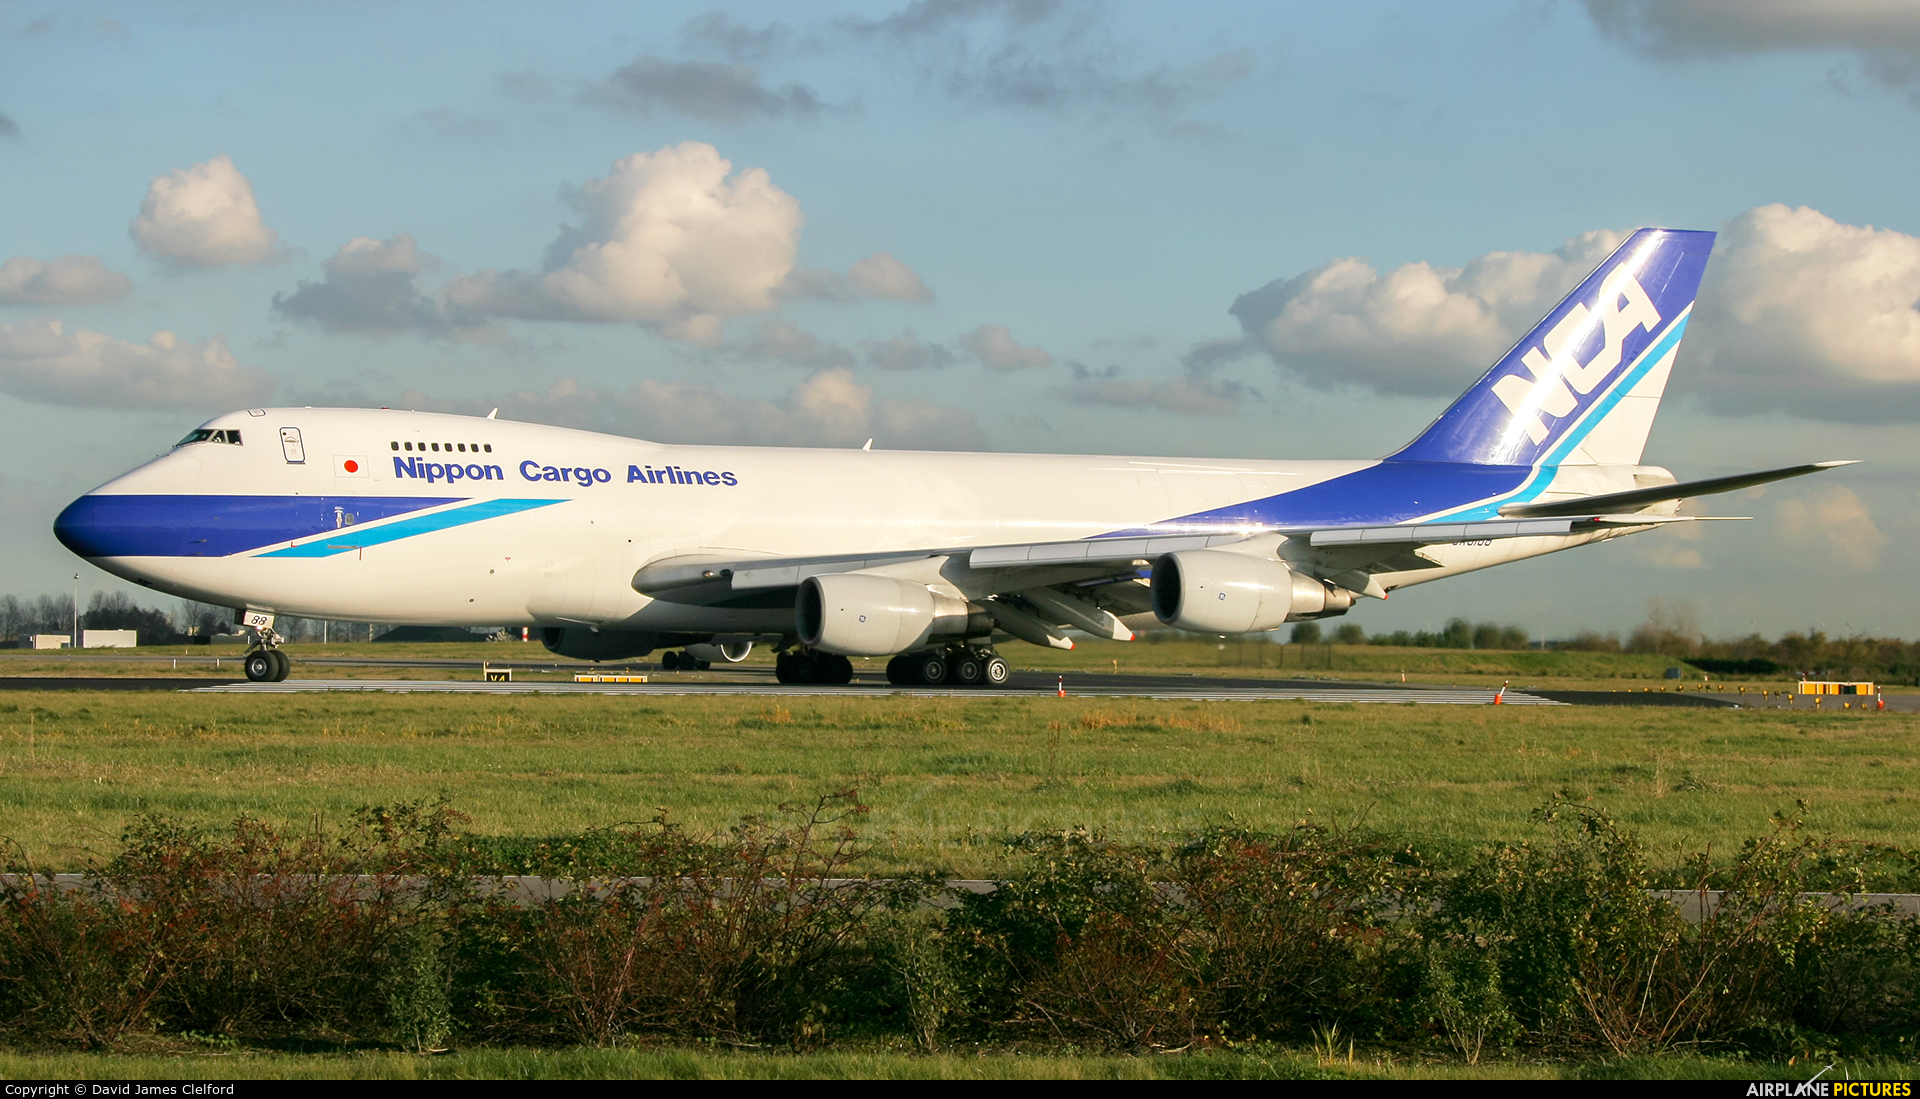 Nippon Cargo Airlines JA8188 aircraft at Amsterdam - Schiphol